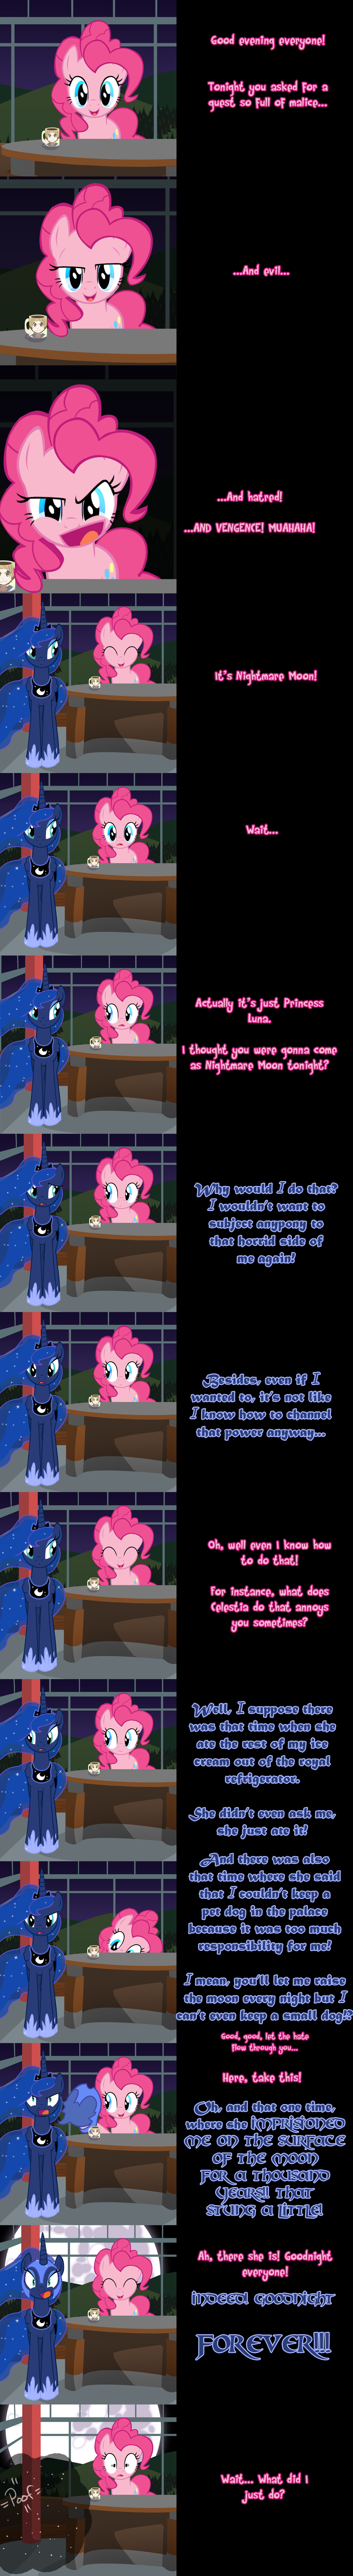 Pinkie Says Goodnight - Evil Equines by Undead-Niklos